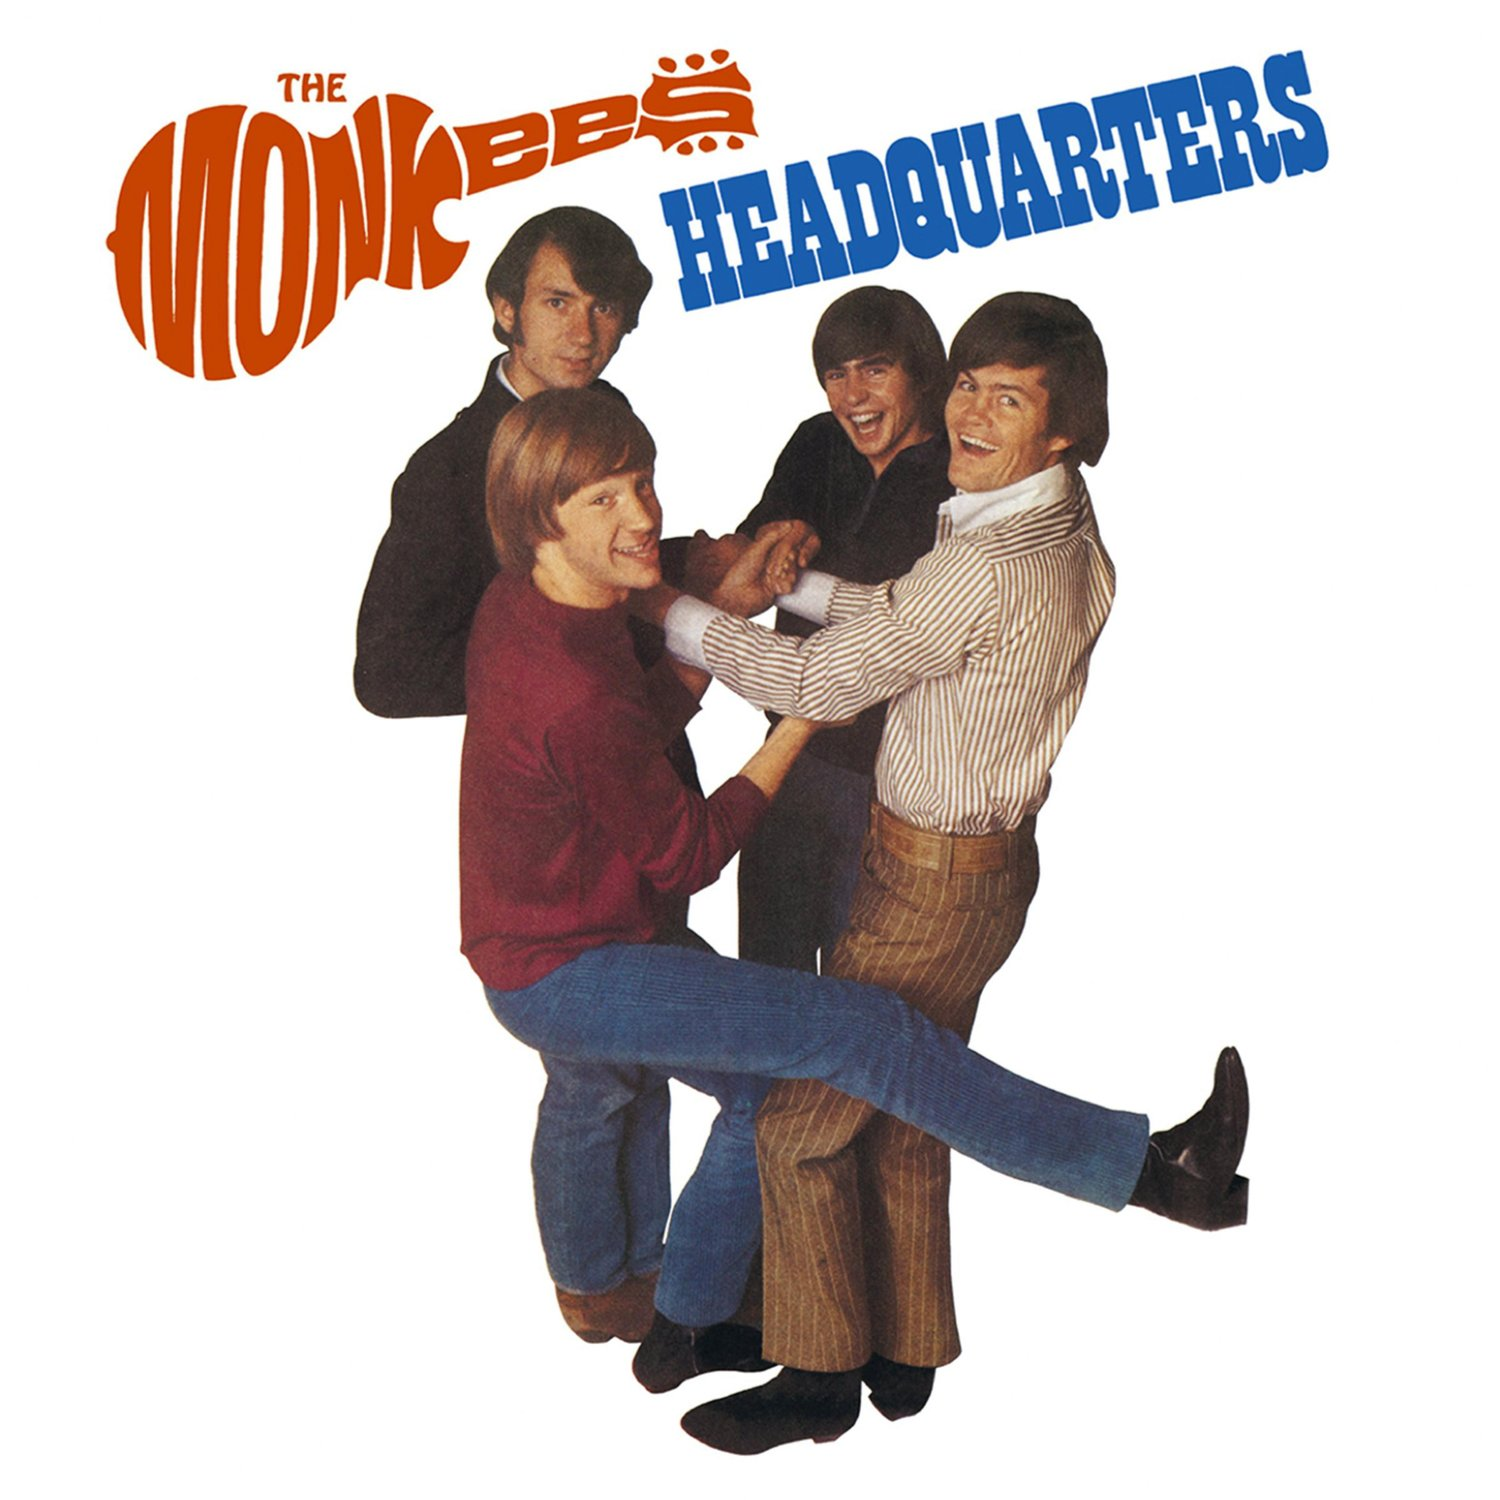 The MONKEES Headquarters BANNER Huge 4X4 Ft Fabric Poster Tapestry Flag Print album cover art